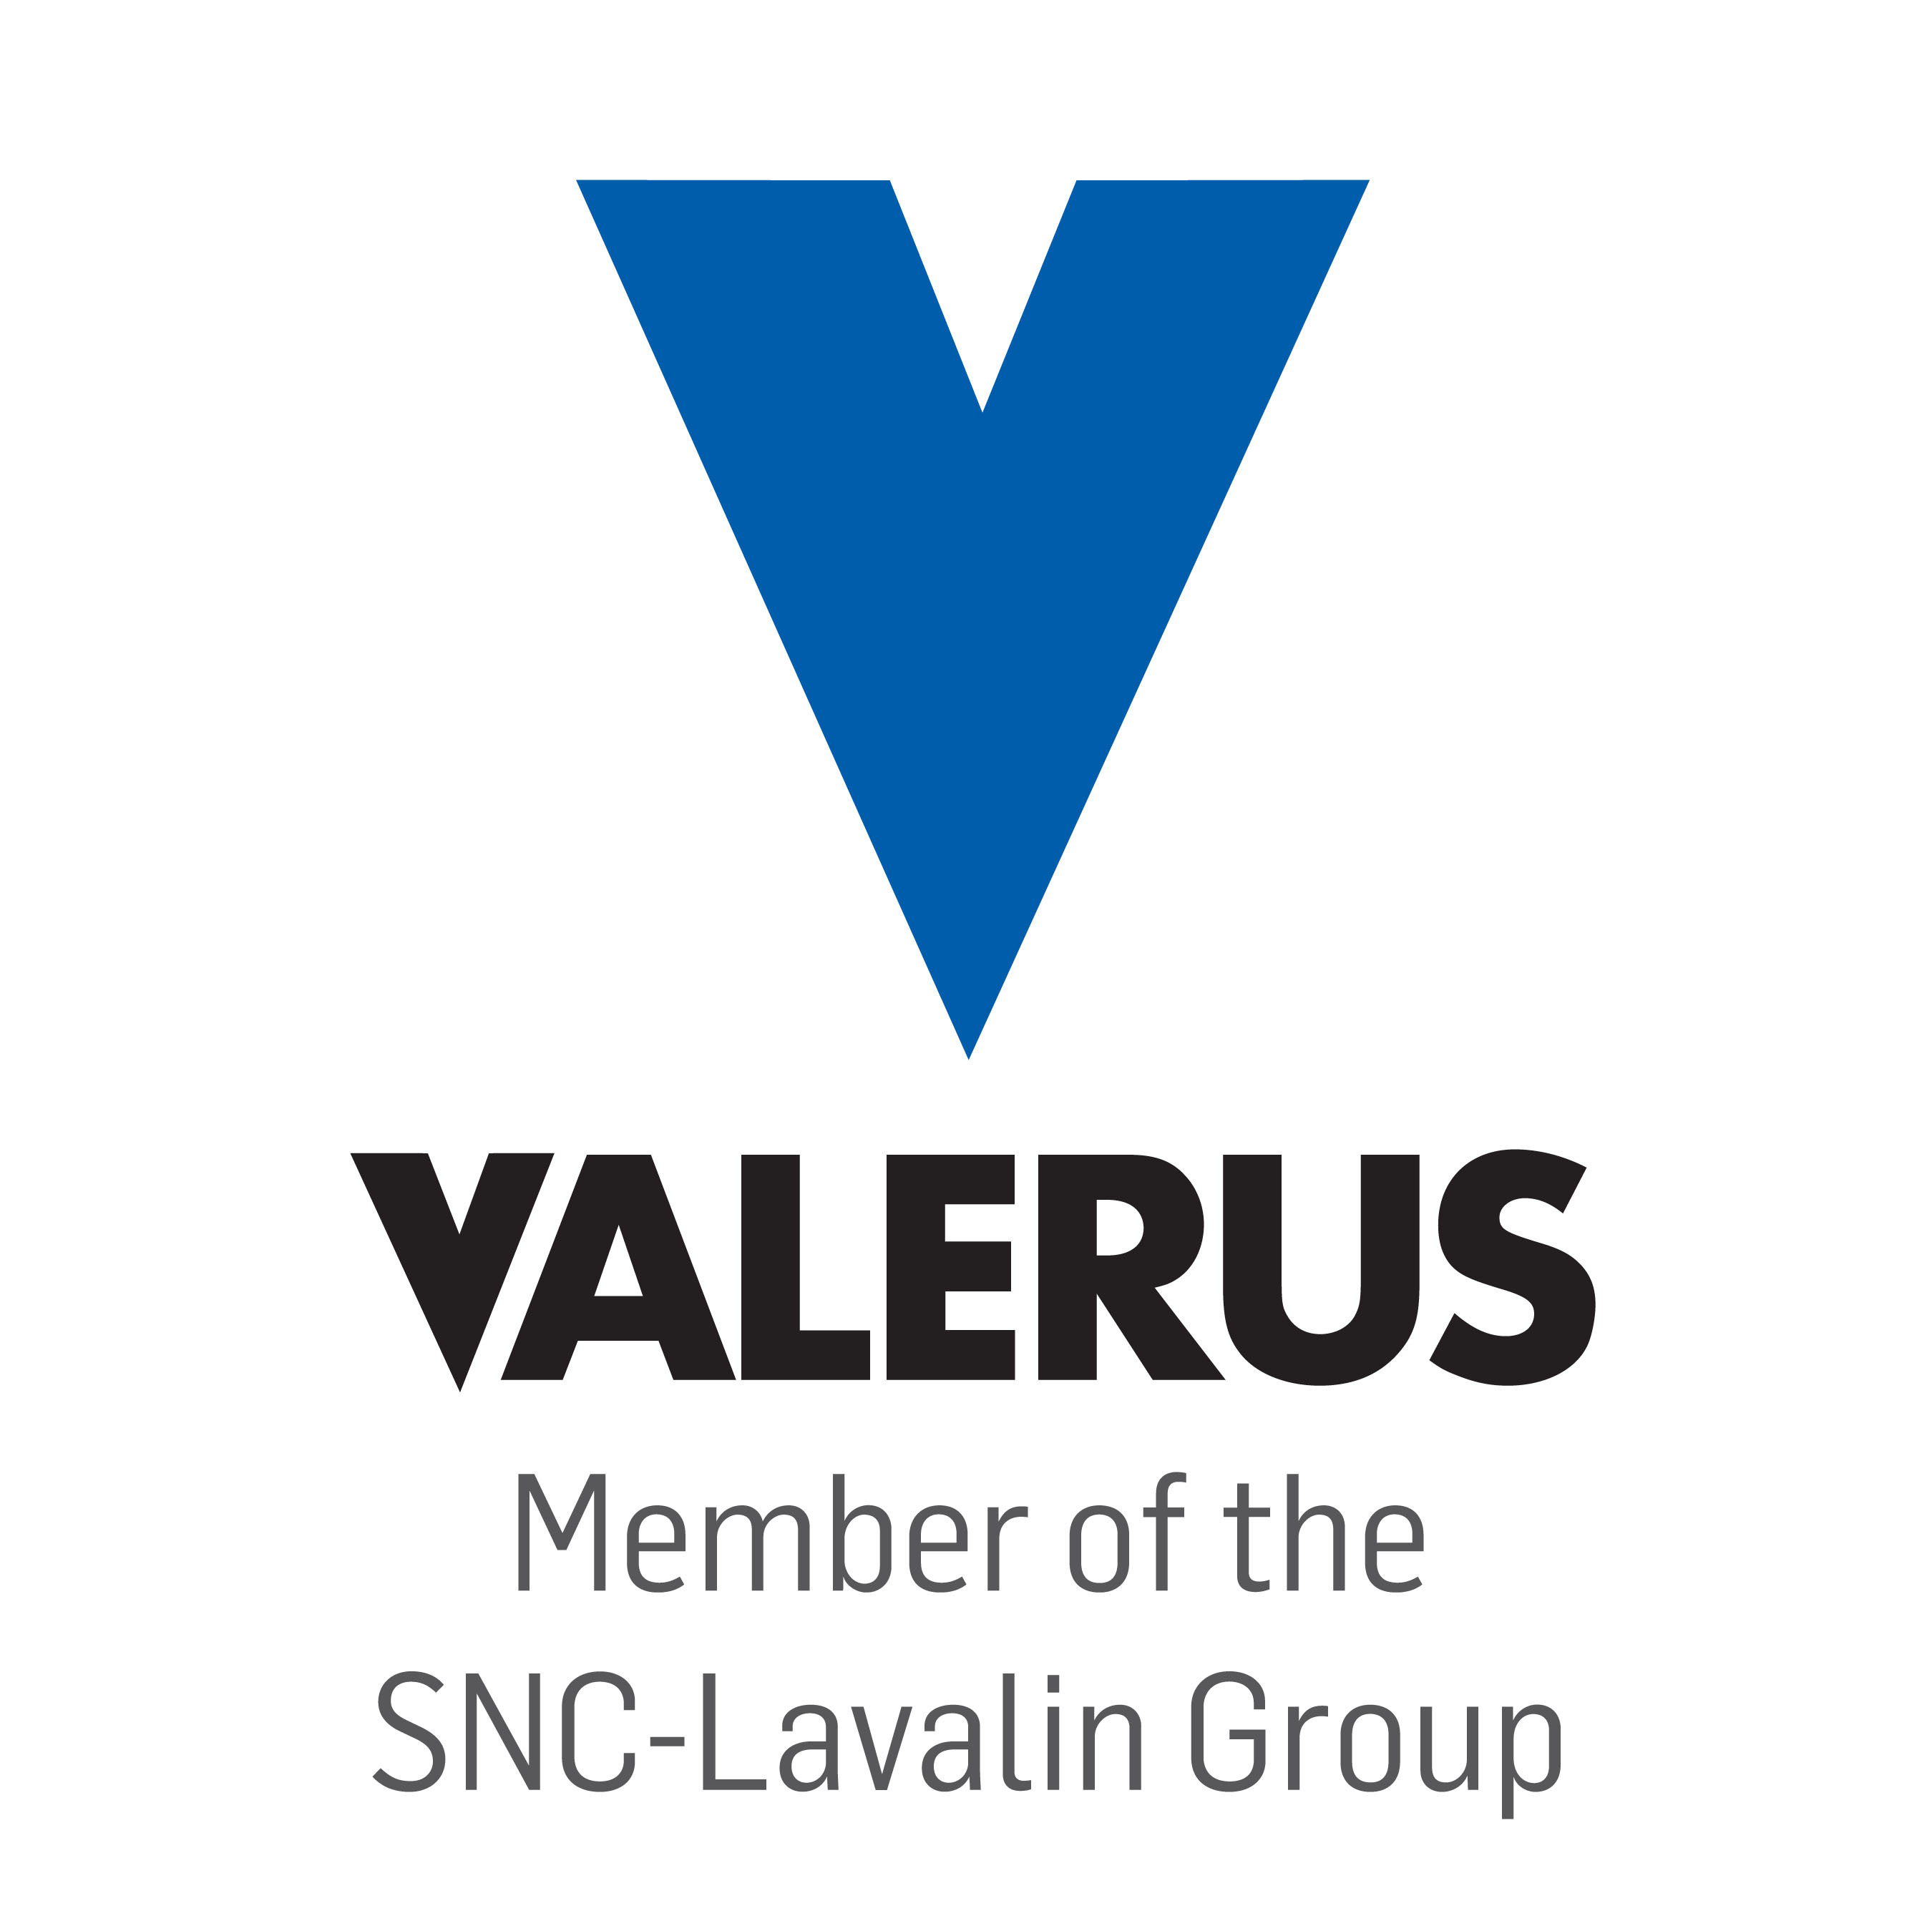 Valerus, a wholly-owned subsidiary of Kentz, is a worldwide leader in integrated oil and gas handling and processing.